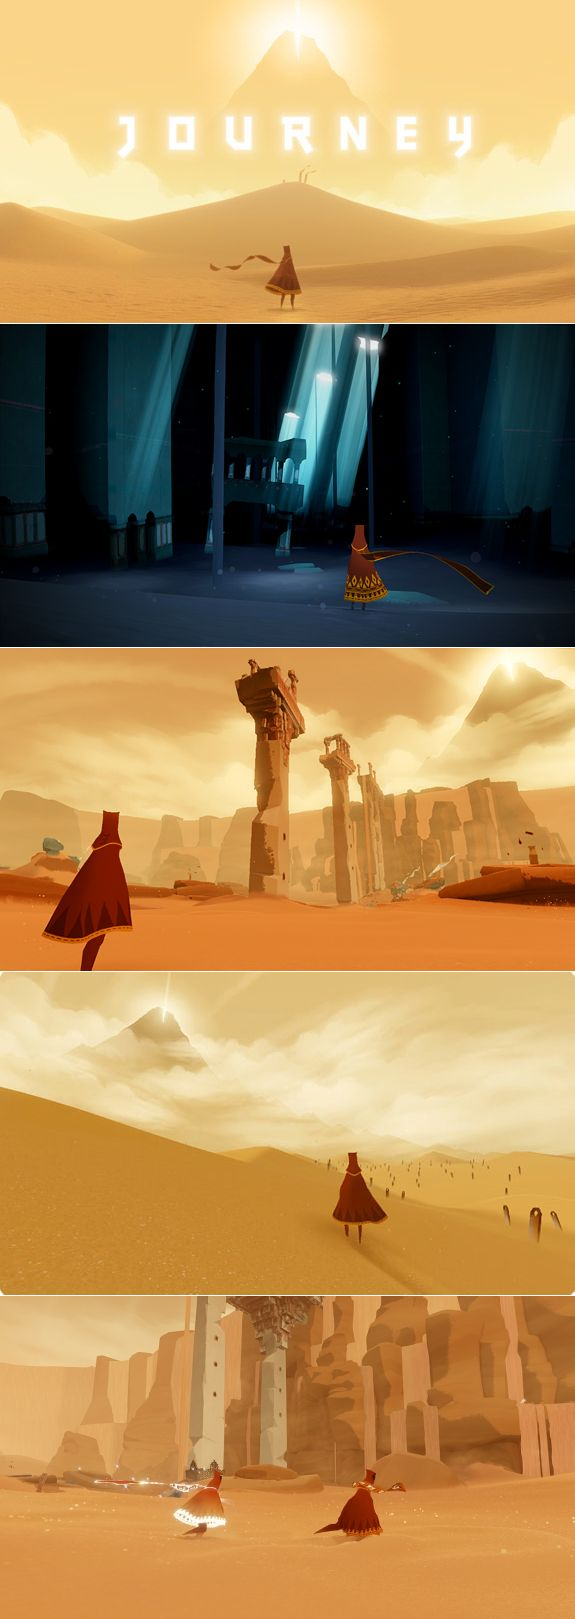 Beautiful images from Journey